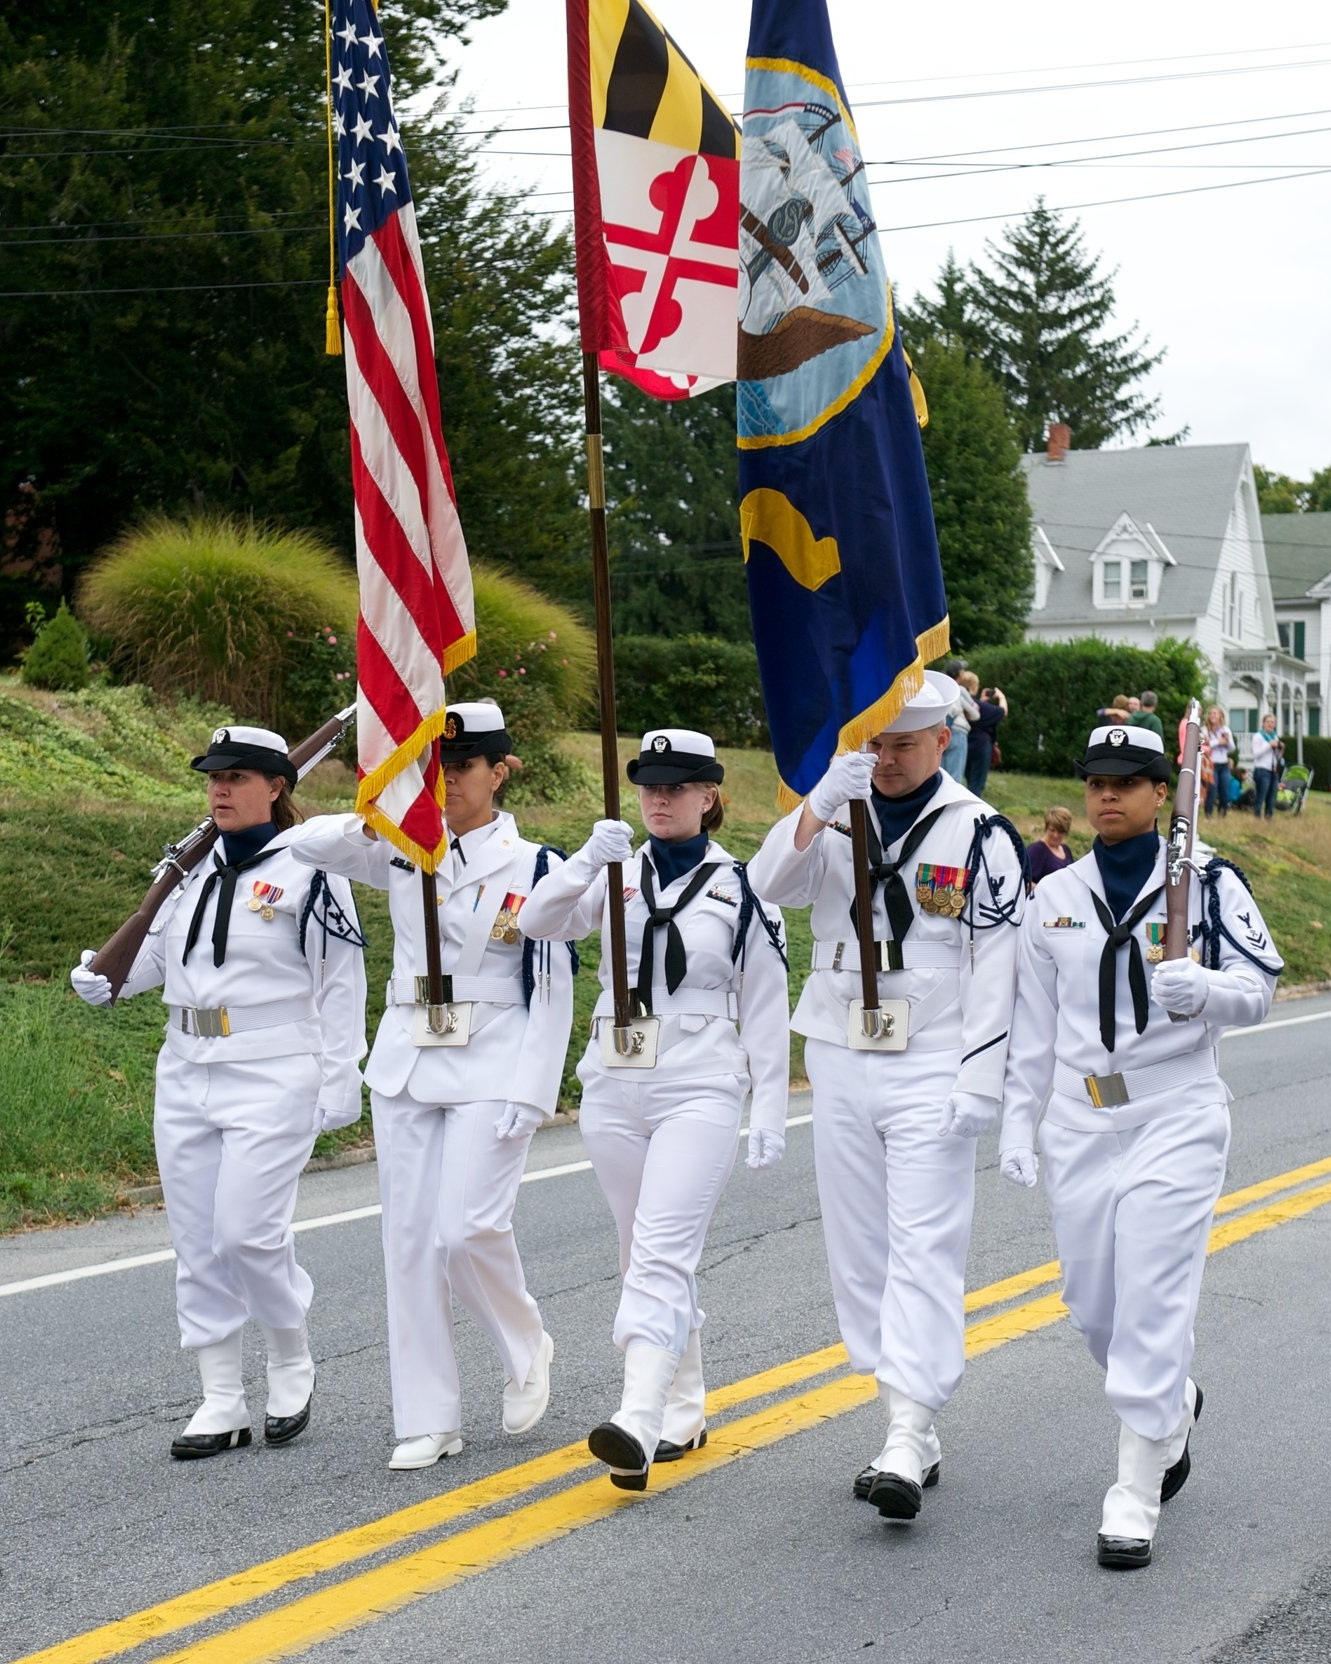 Heritage Parade - Time: Begins at 10:00 AM – Location: Green StreetThe Middletown Heritage Festival Parade kicks off the Festival with the Frederick County Honor Guard leading the parade down Green Street to Elm Street. With its dance groups, floats, marching bands and a variety of community organizations, the parade is always a highlight of the day.